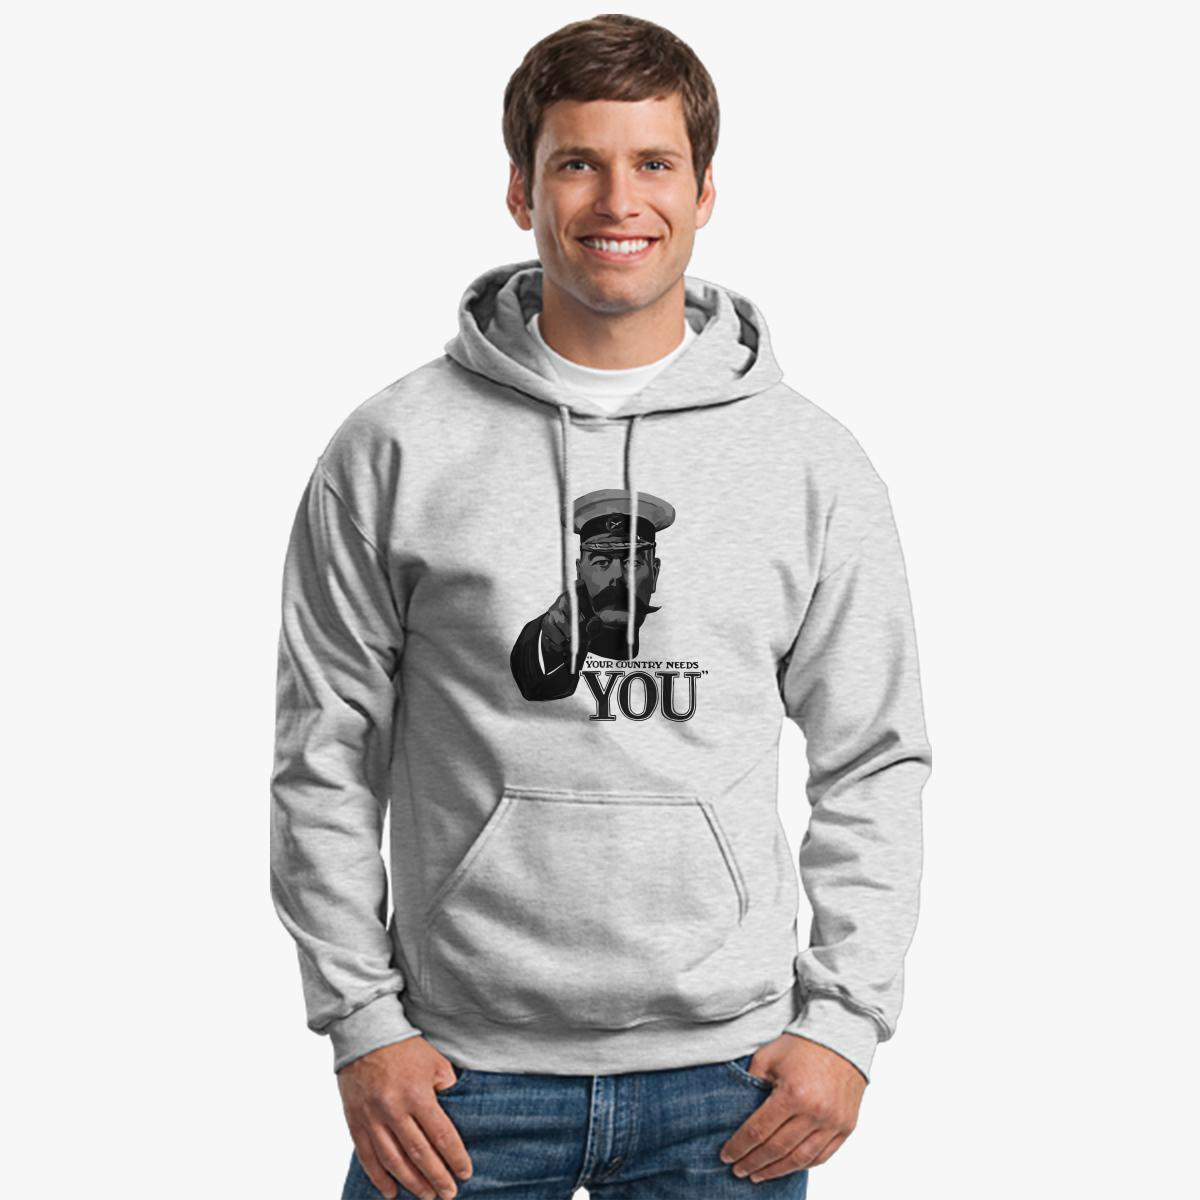 Lord Kitchener Your Country Needs You Hoodie | Customon.com